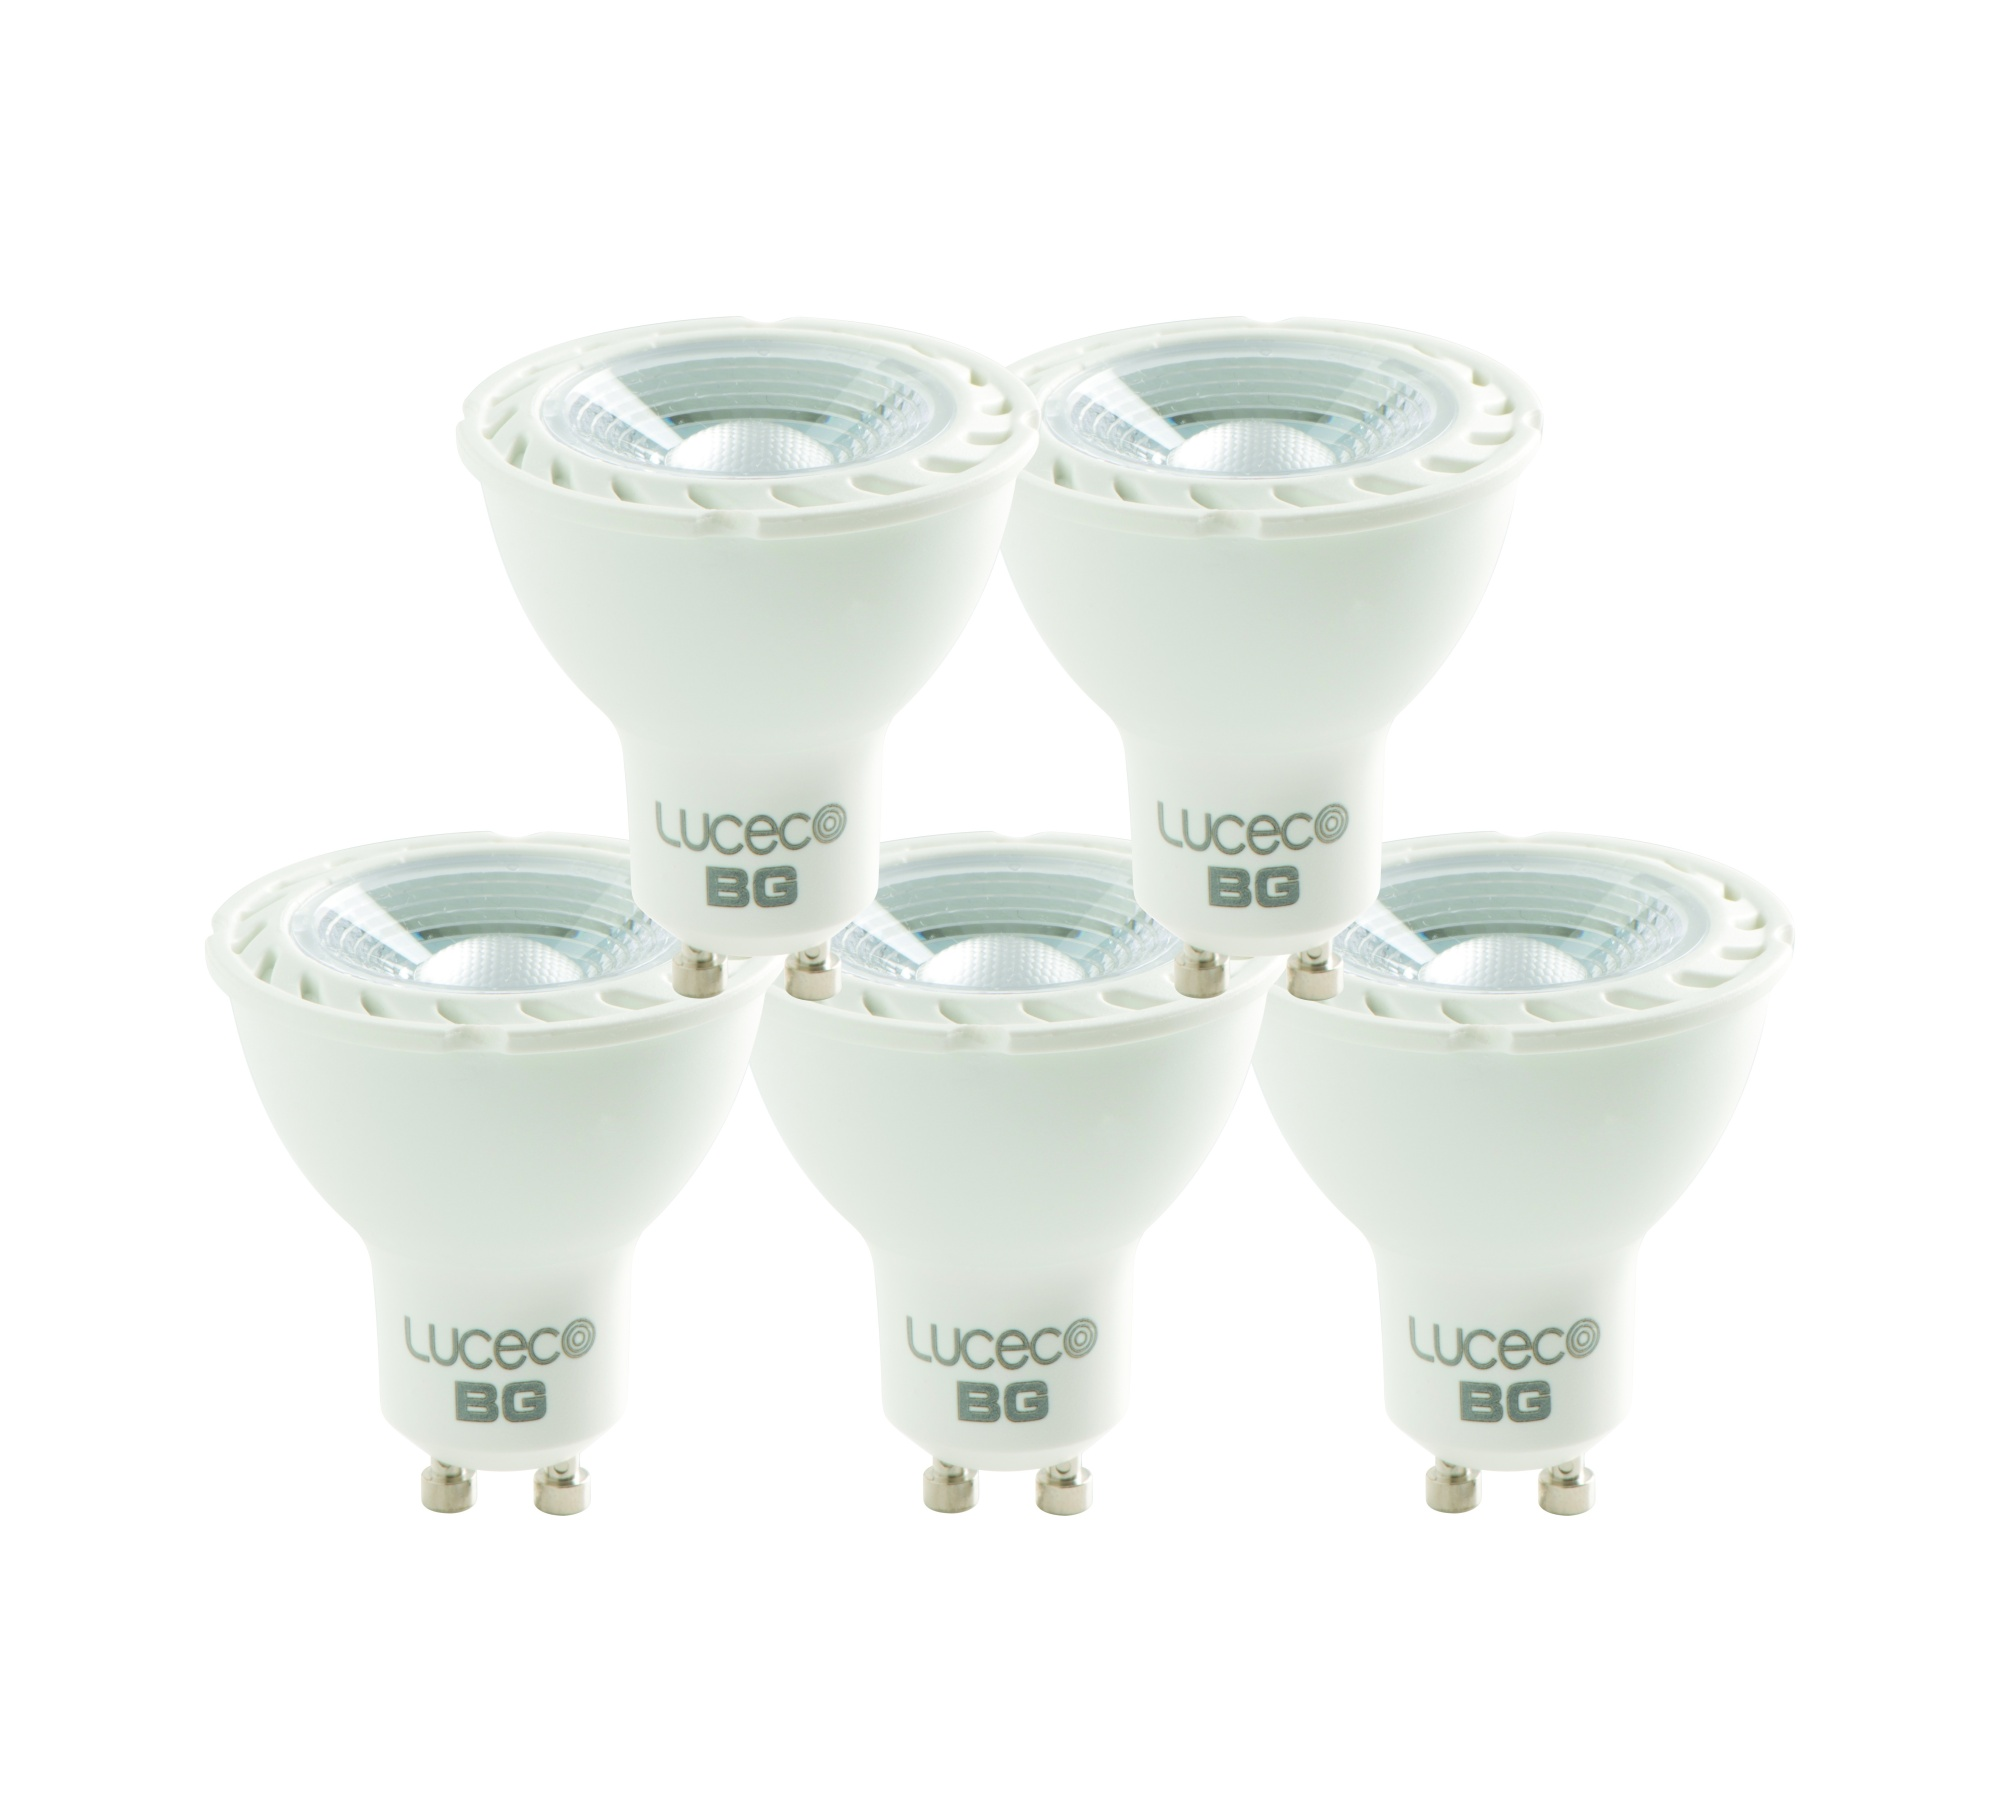 Luceco LED GU10 Dimmable 4000K 5W 370lm Bulb Natural Light